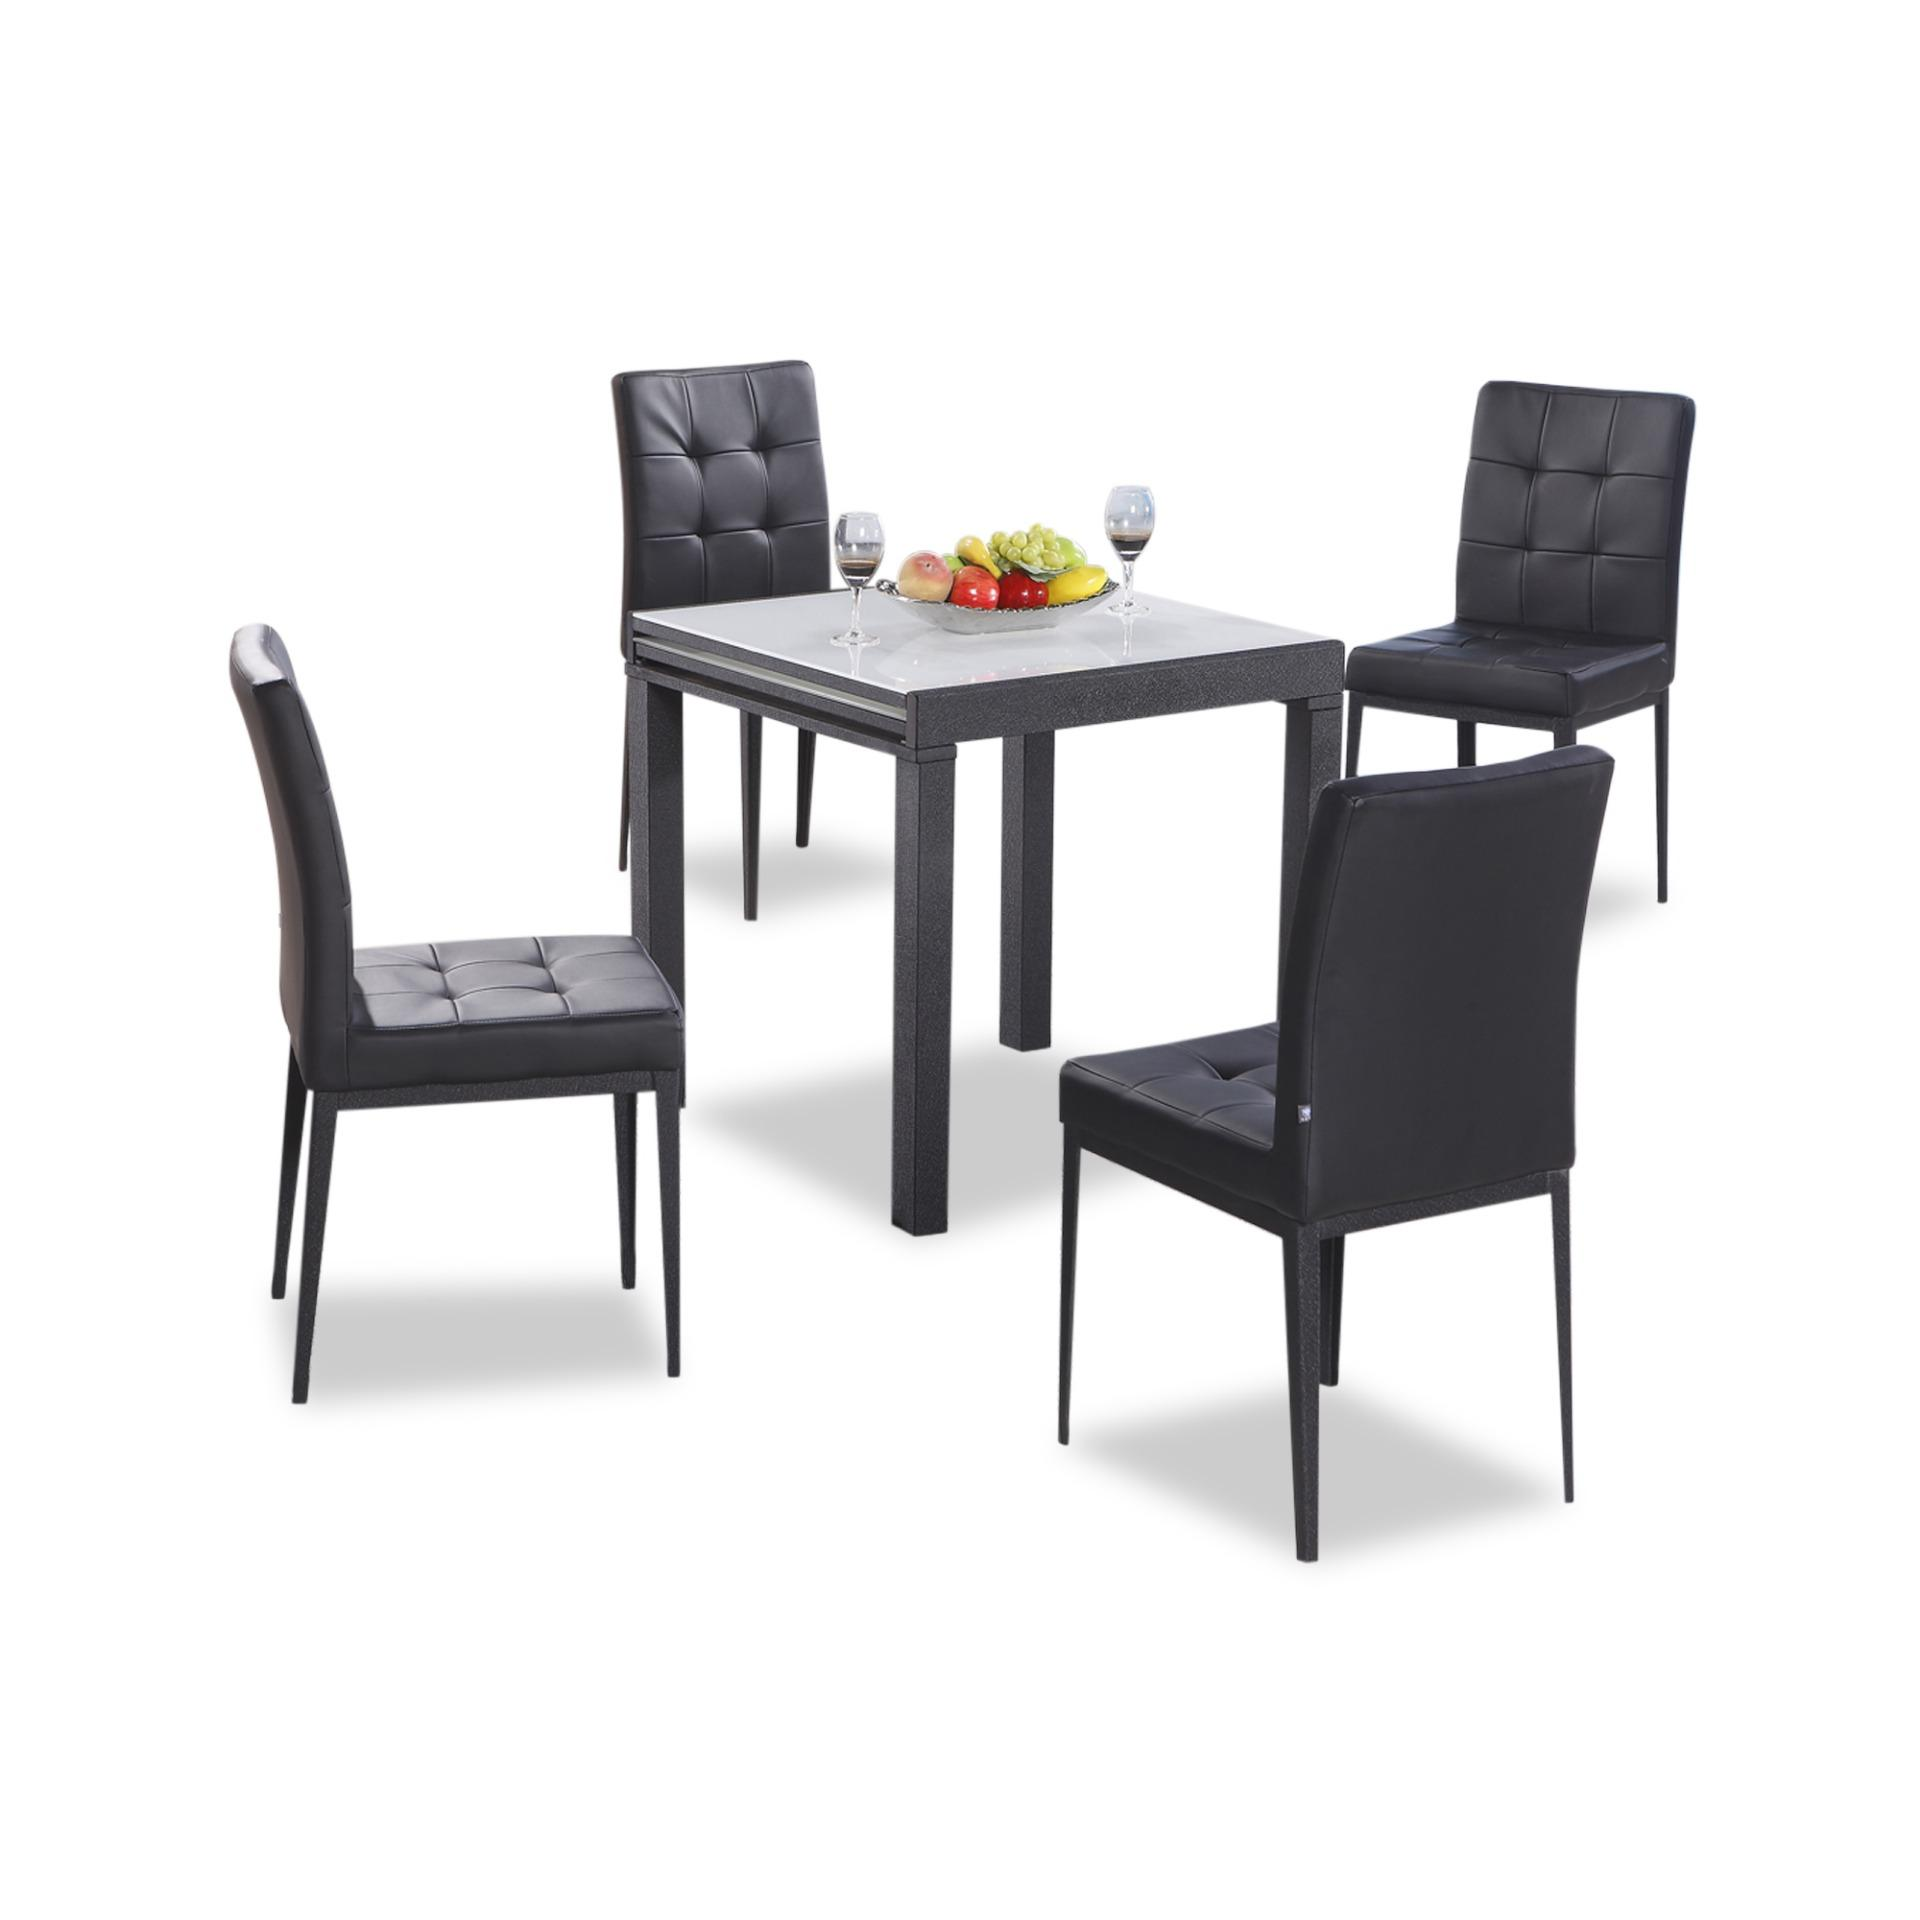 Eline Extendable Tempered Glass Top Dining Table + 4 Dining Chairs (FREE DELIVERY)(FREE ASSEMBLY)